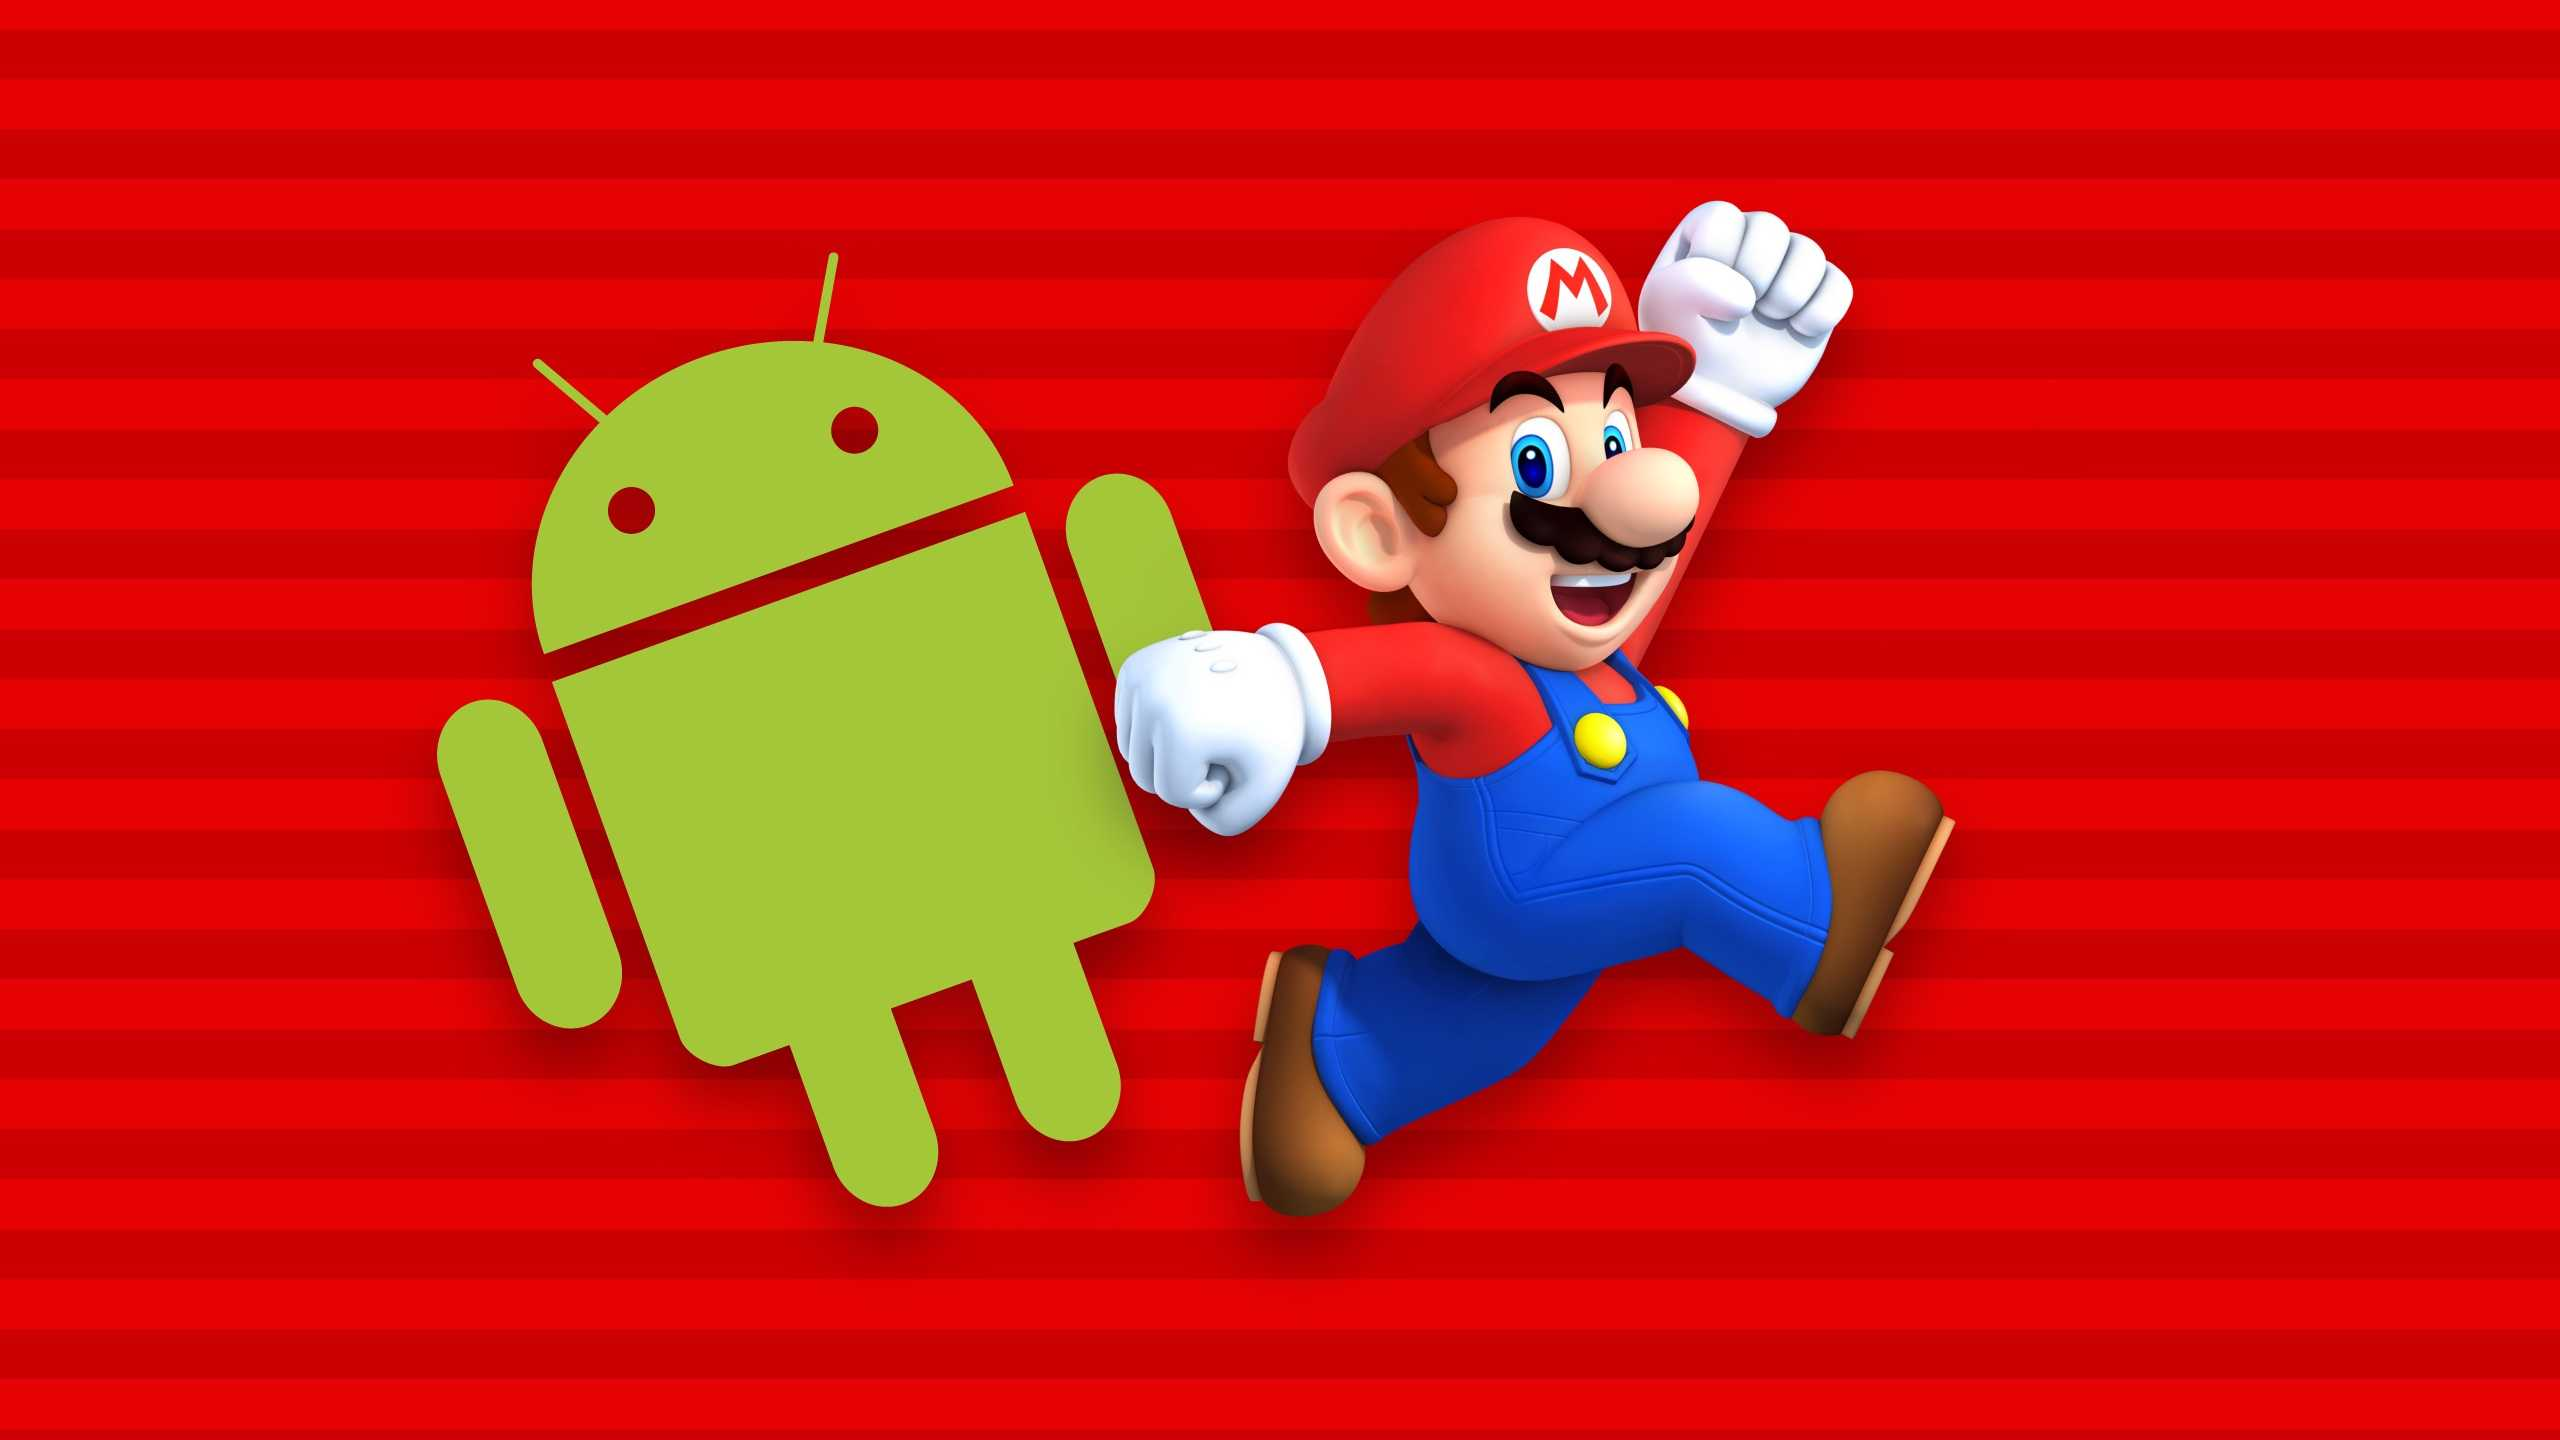 Nintendo's 'Super Mario Run' Didn't Meet Sales Expectations